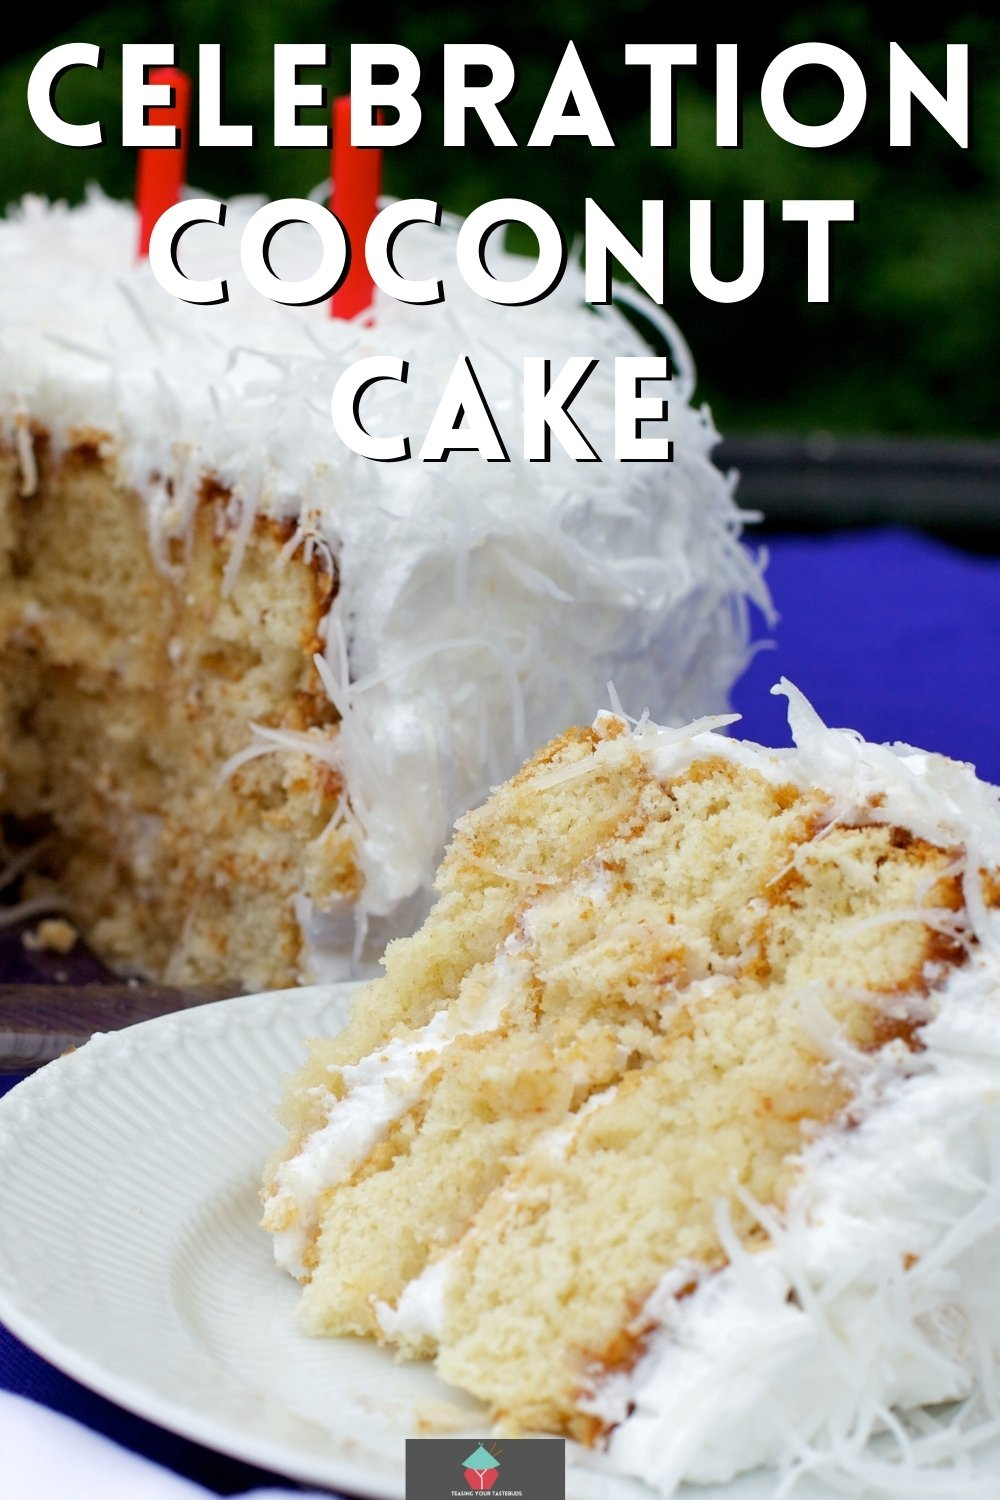 Celebration Coconut Cake. Perfect for a celebration, this coconut cake is made up of layers of soft coconut cake sandwiched between lemon curd then frosted with a light and airy coconut frosting.